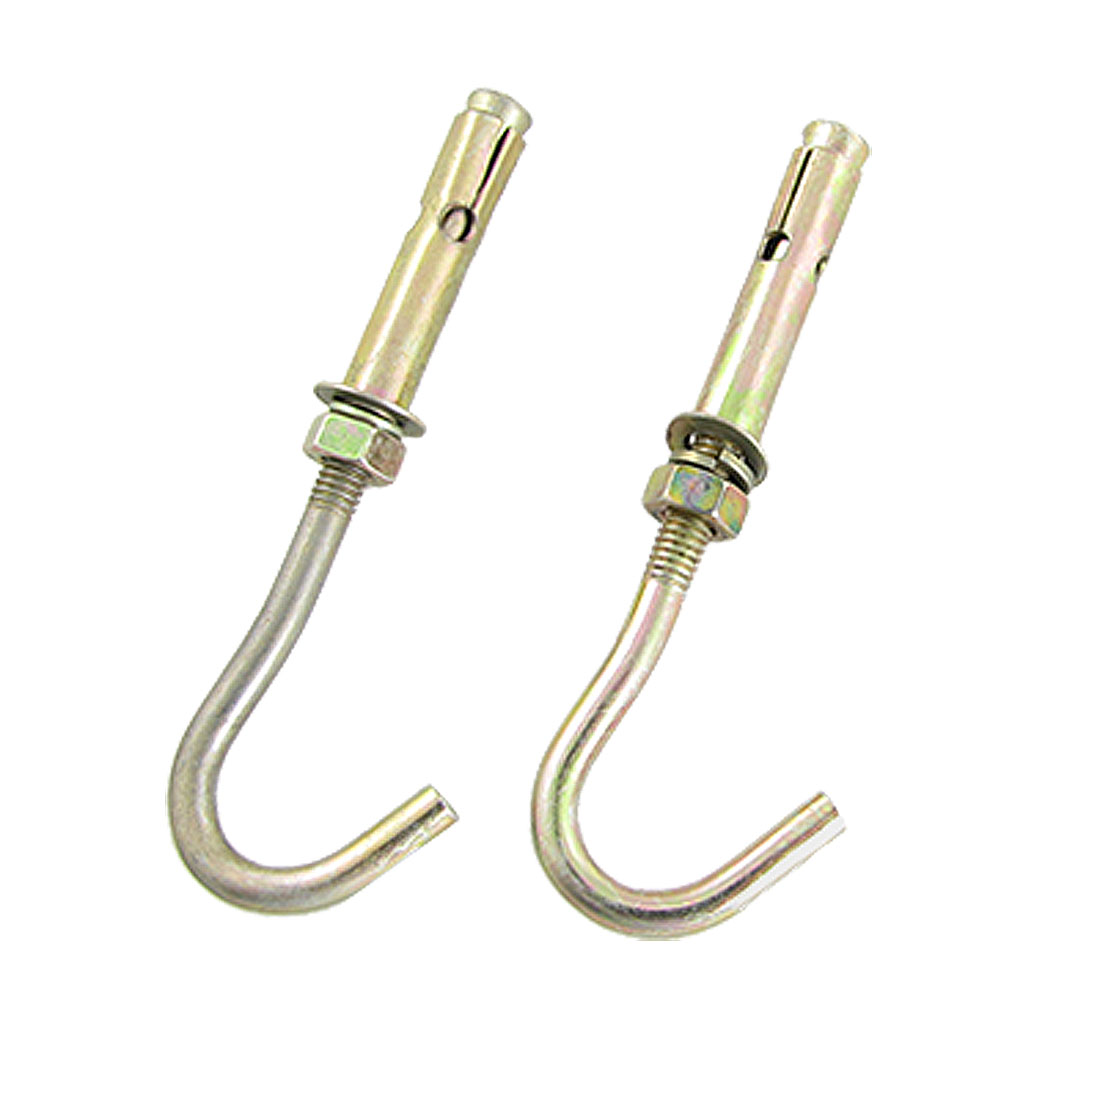 2 Pcs Hardware Expansion Anchor Bolt Open Cup Hooks M6